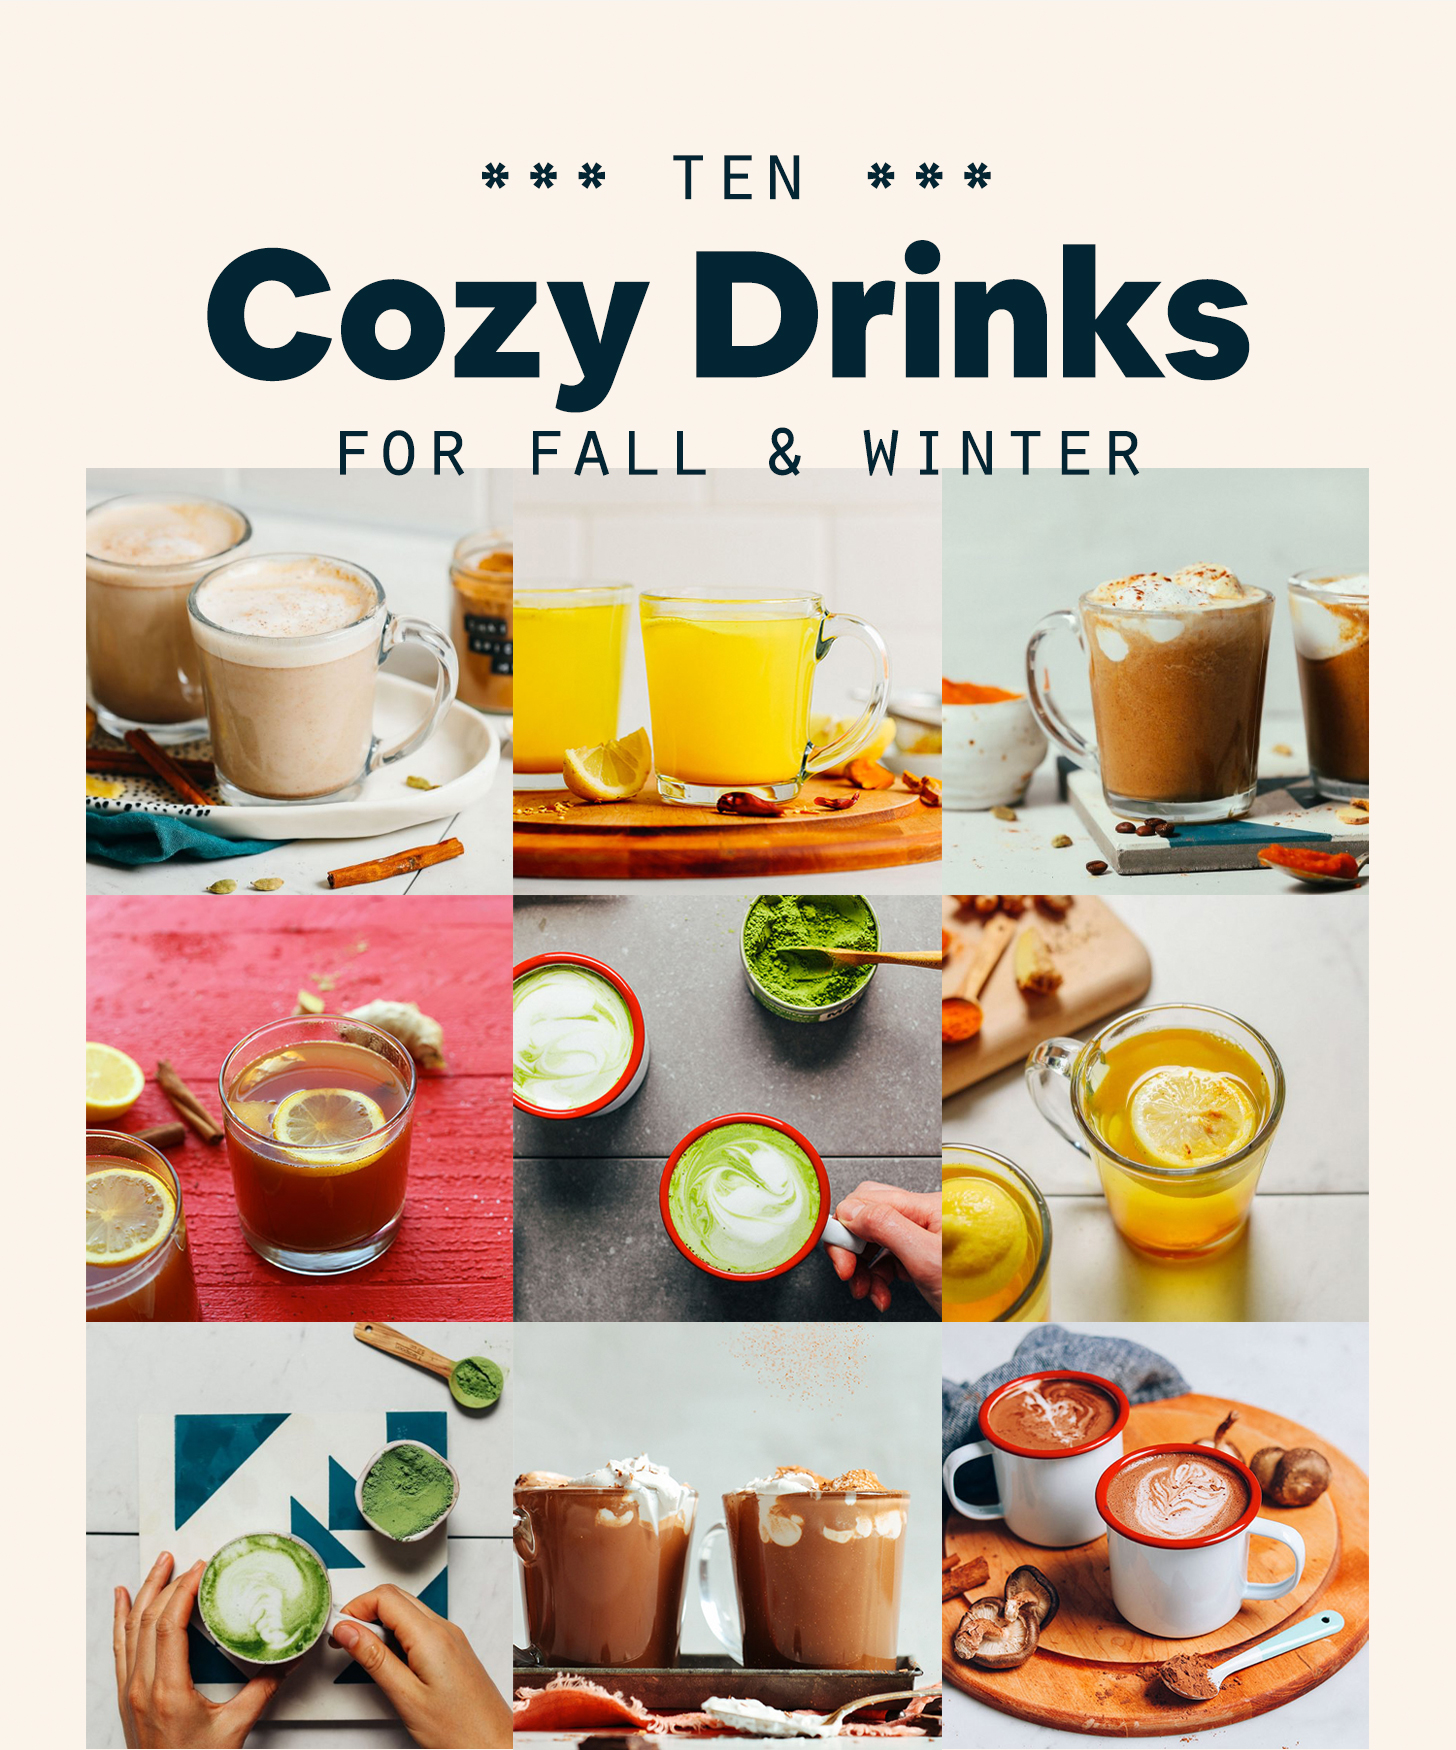 Assortment of recipe photos for our round-up of cozy drinks for fall and winter